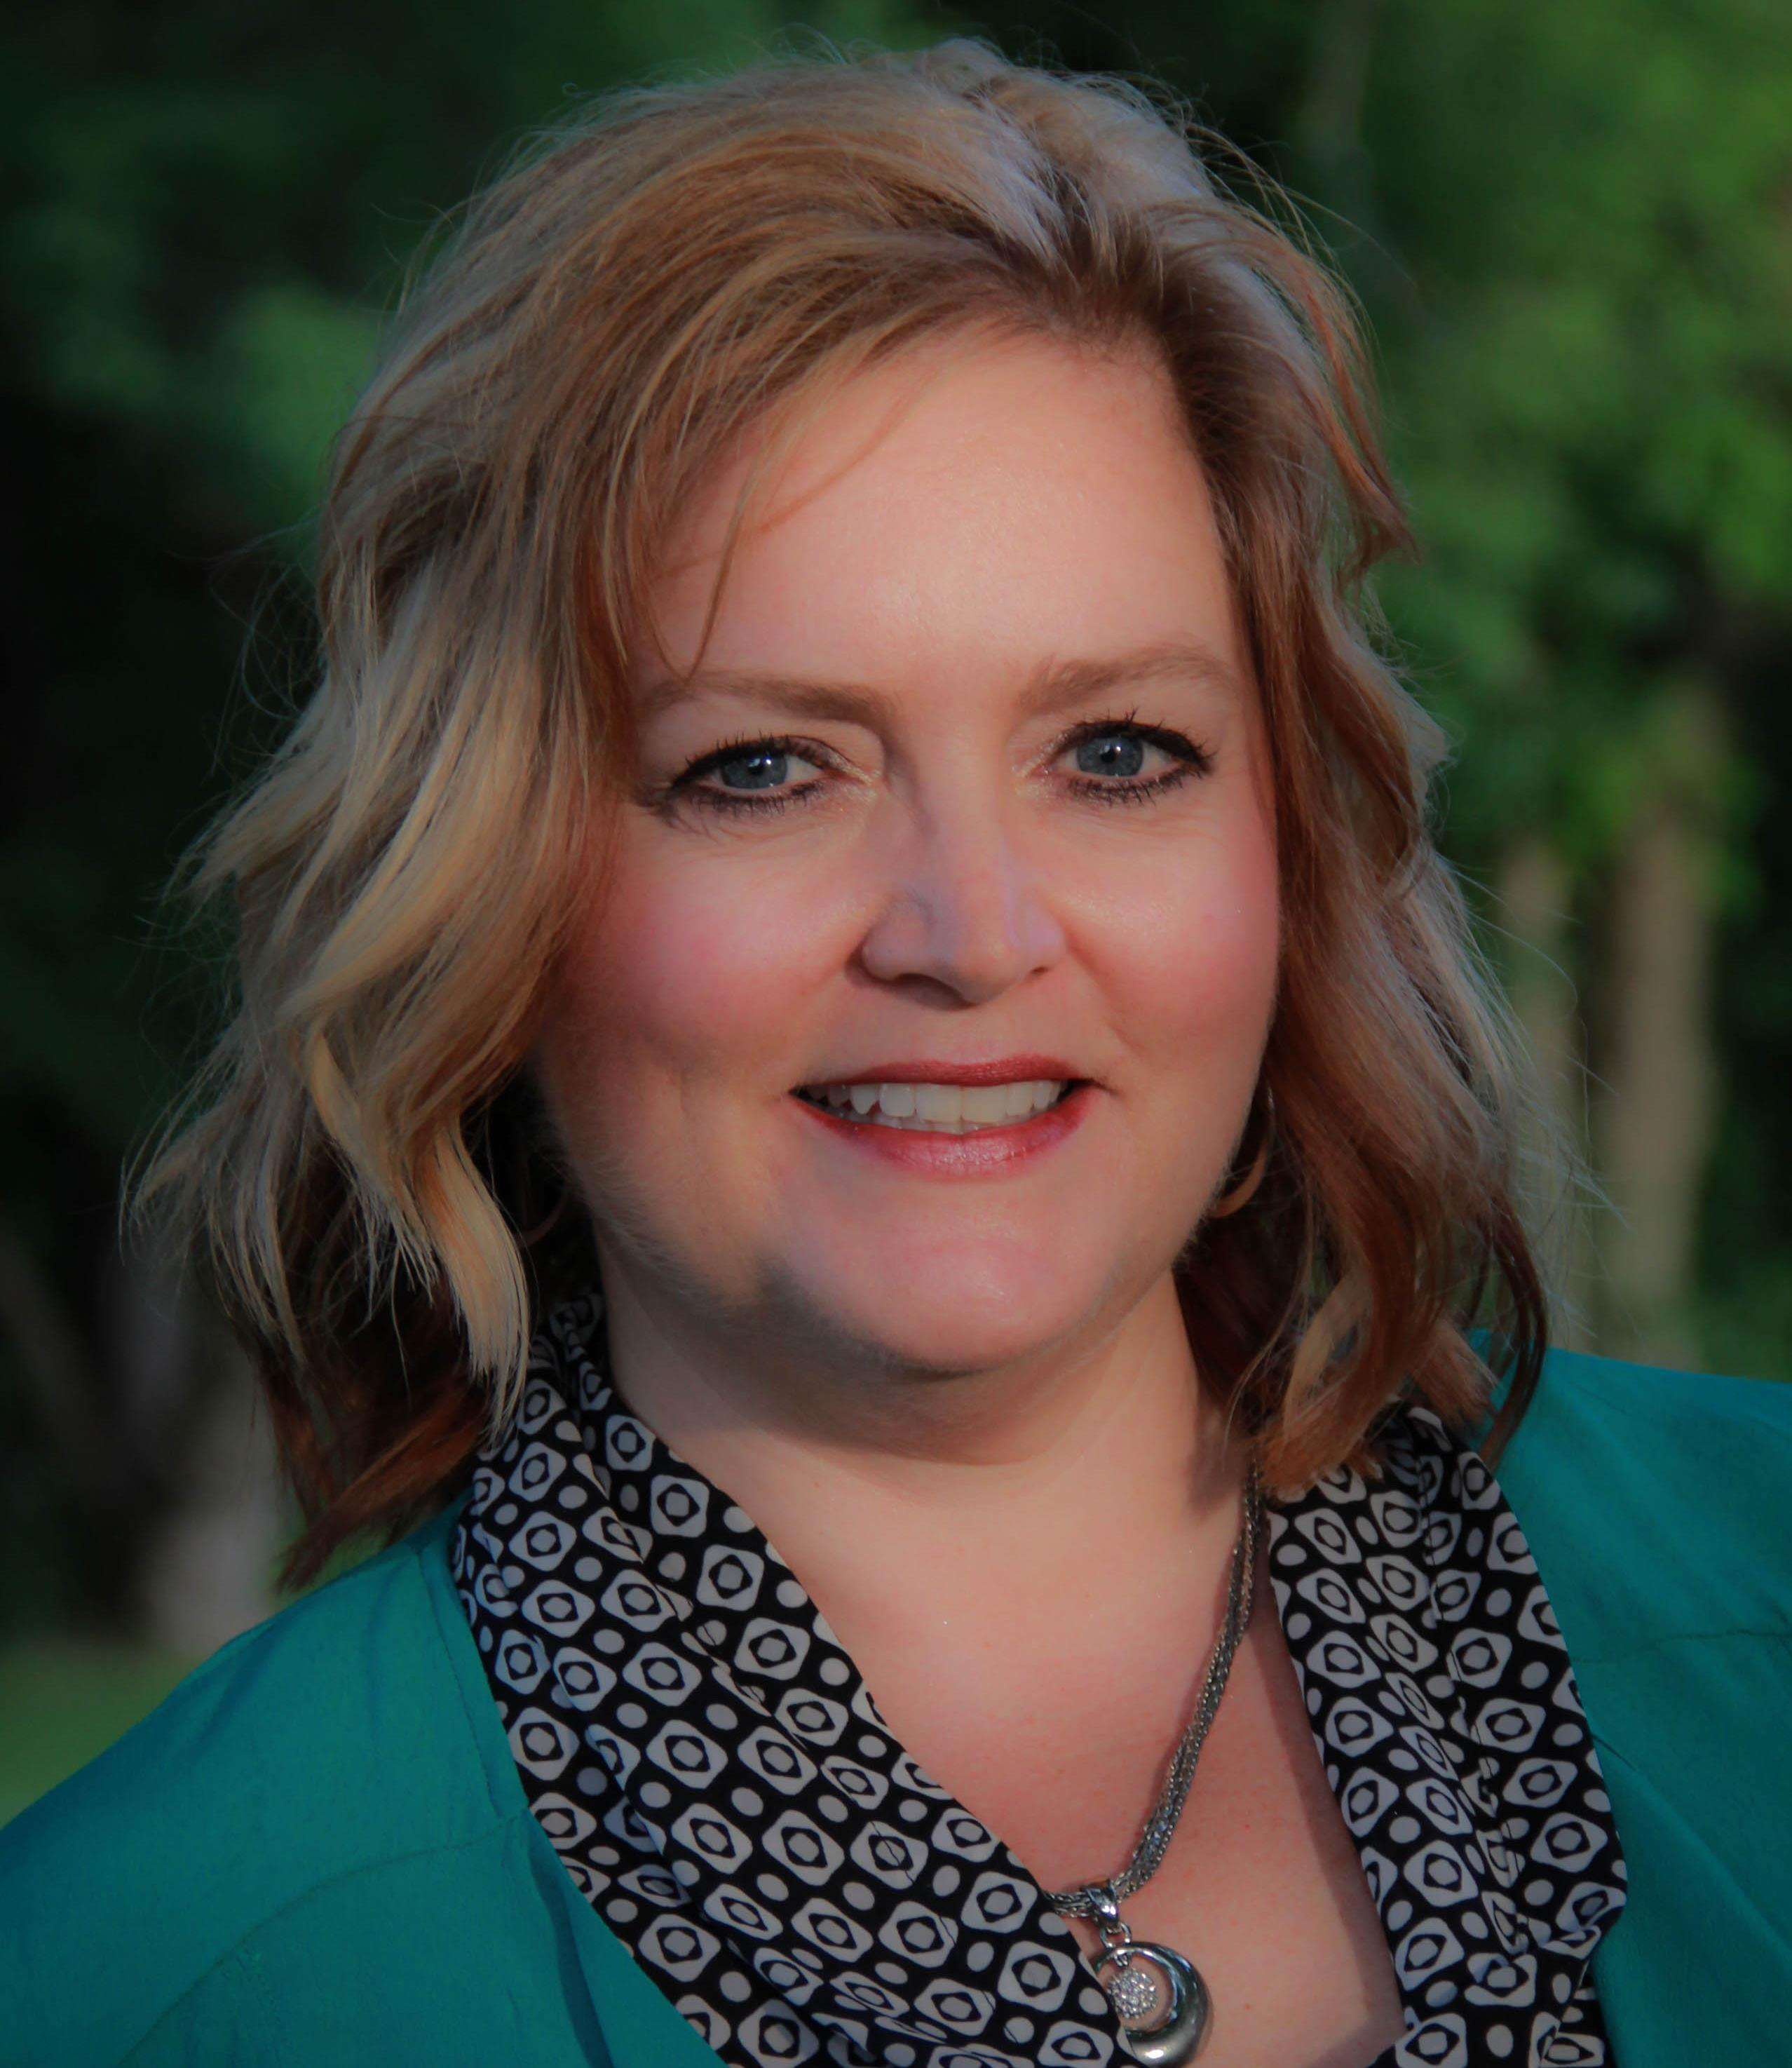 Amy Wach is a licensed real estate agent in Madison WI